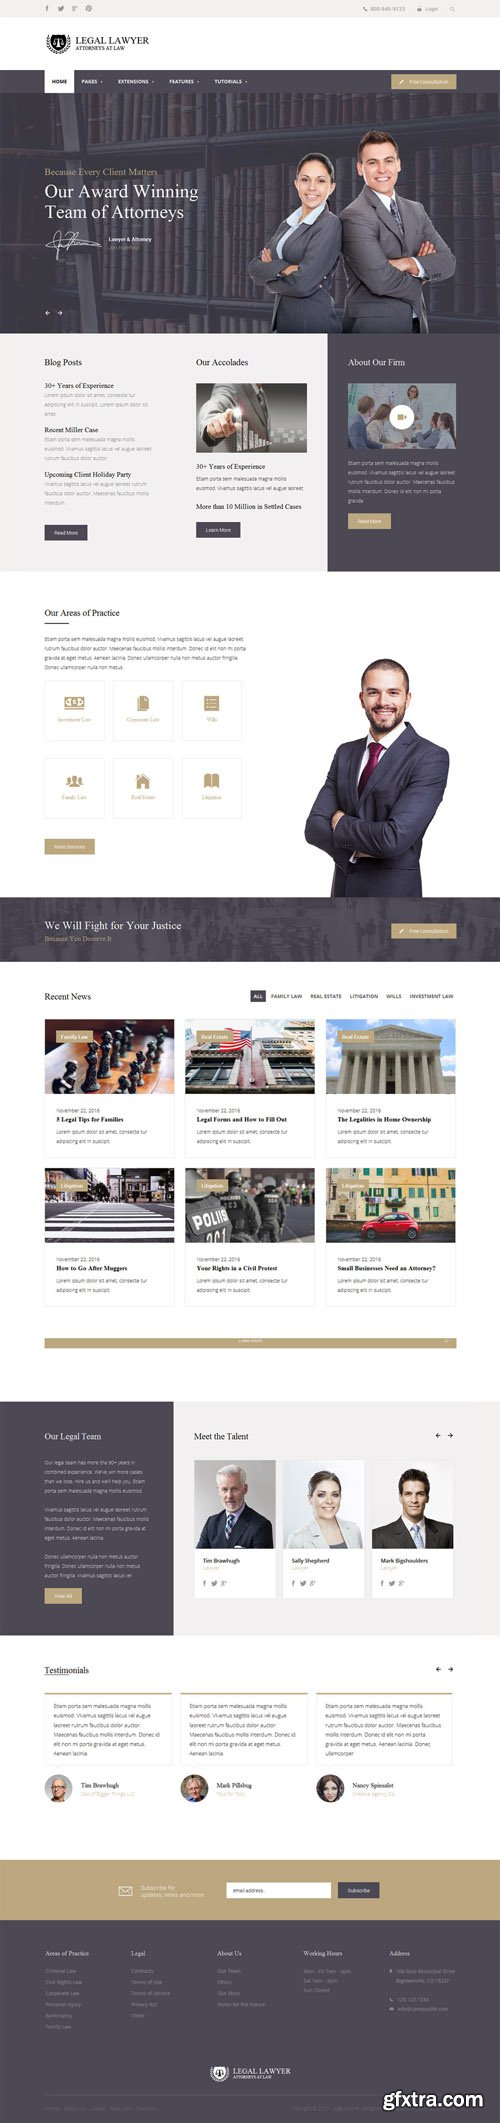 Shape5 - Legal Lawyer v1.0.2 - Joomla Template